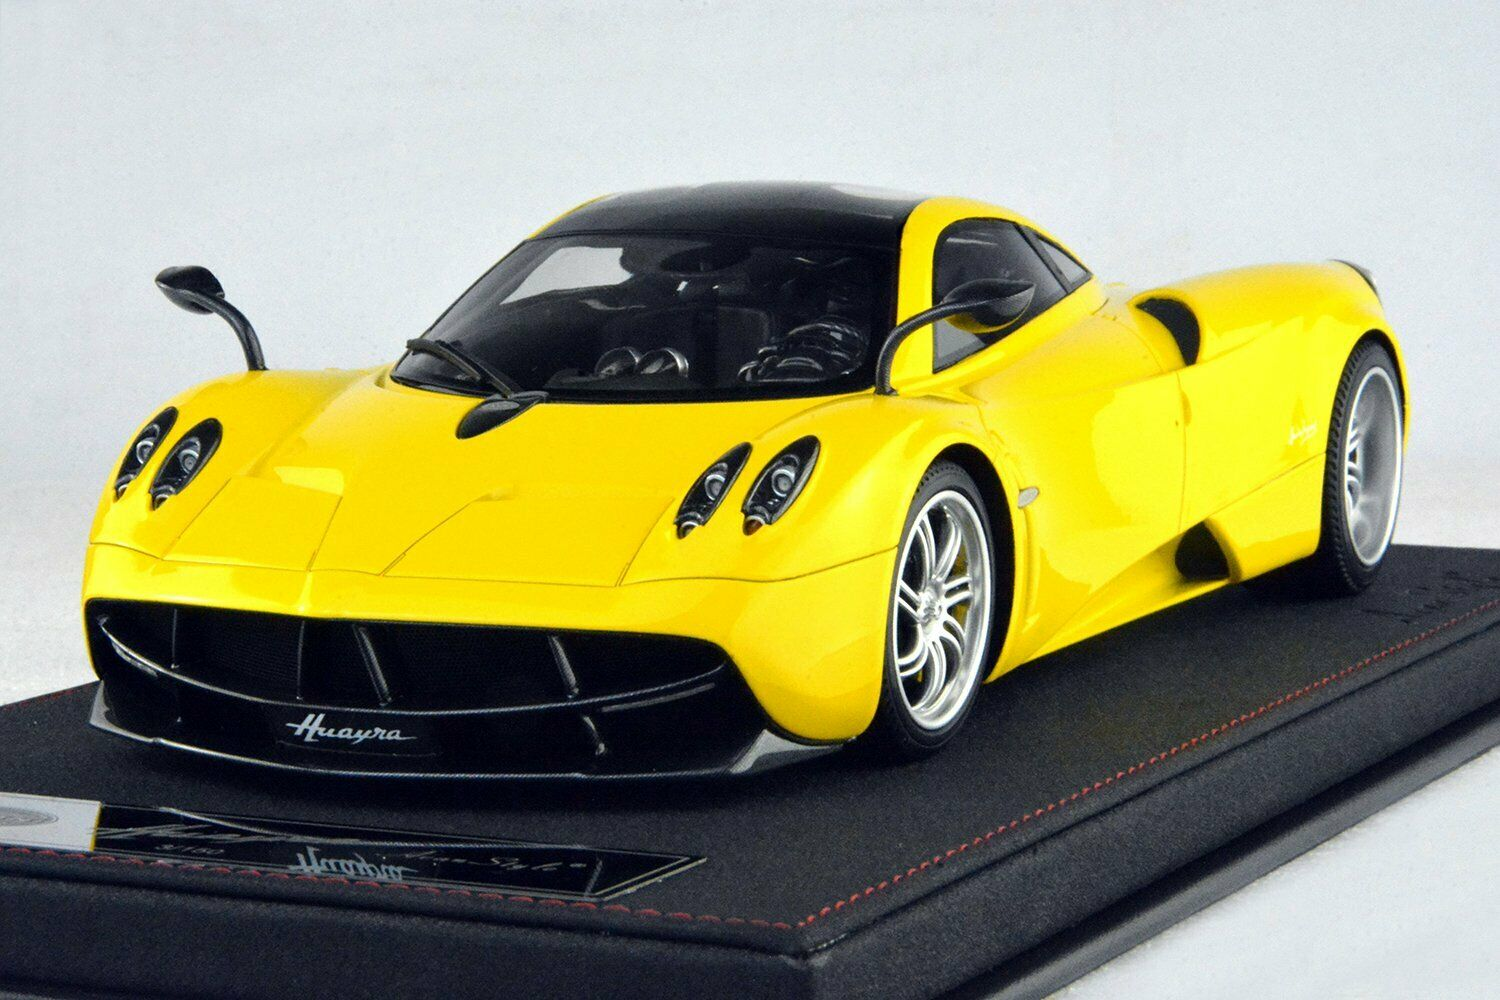 descuento online Frontiart avanstyle 1 18 Pagani huarya COUPE COUPE COUPE Amarillo AS021-126  más orden